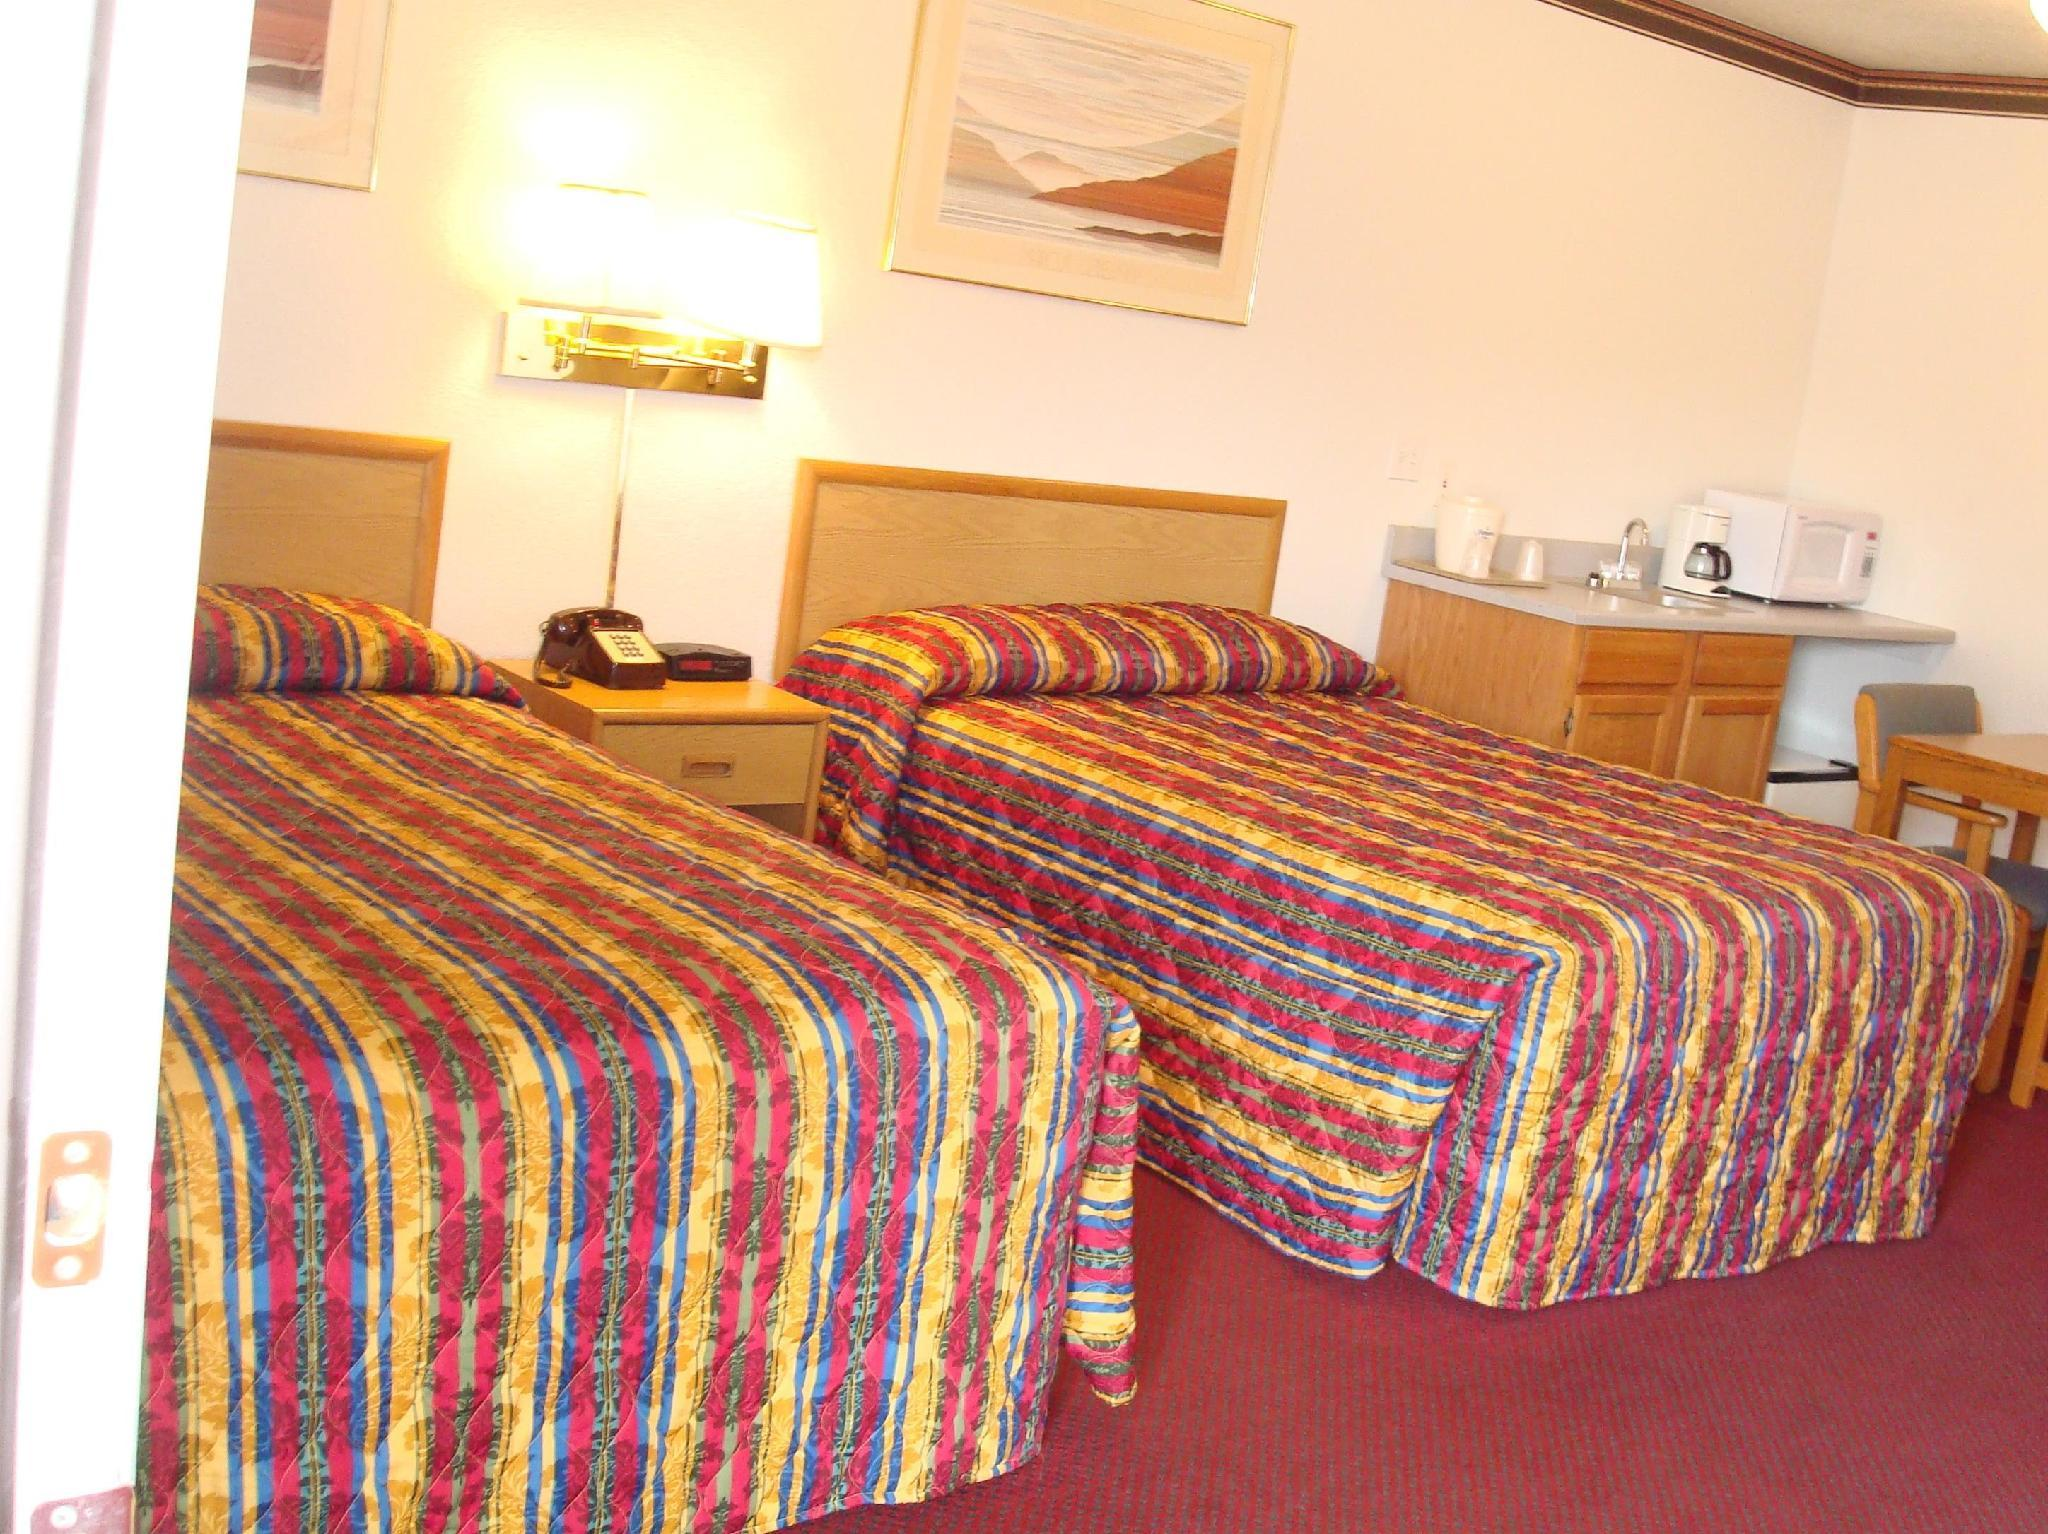 2 camas dobles (2 Double Beds)